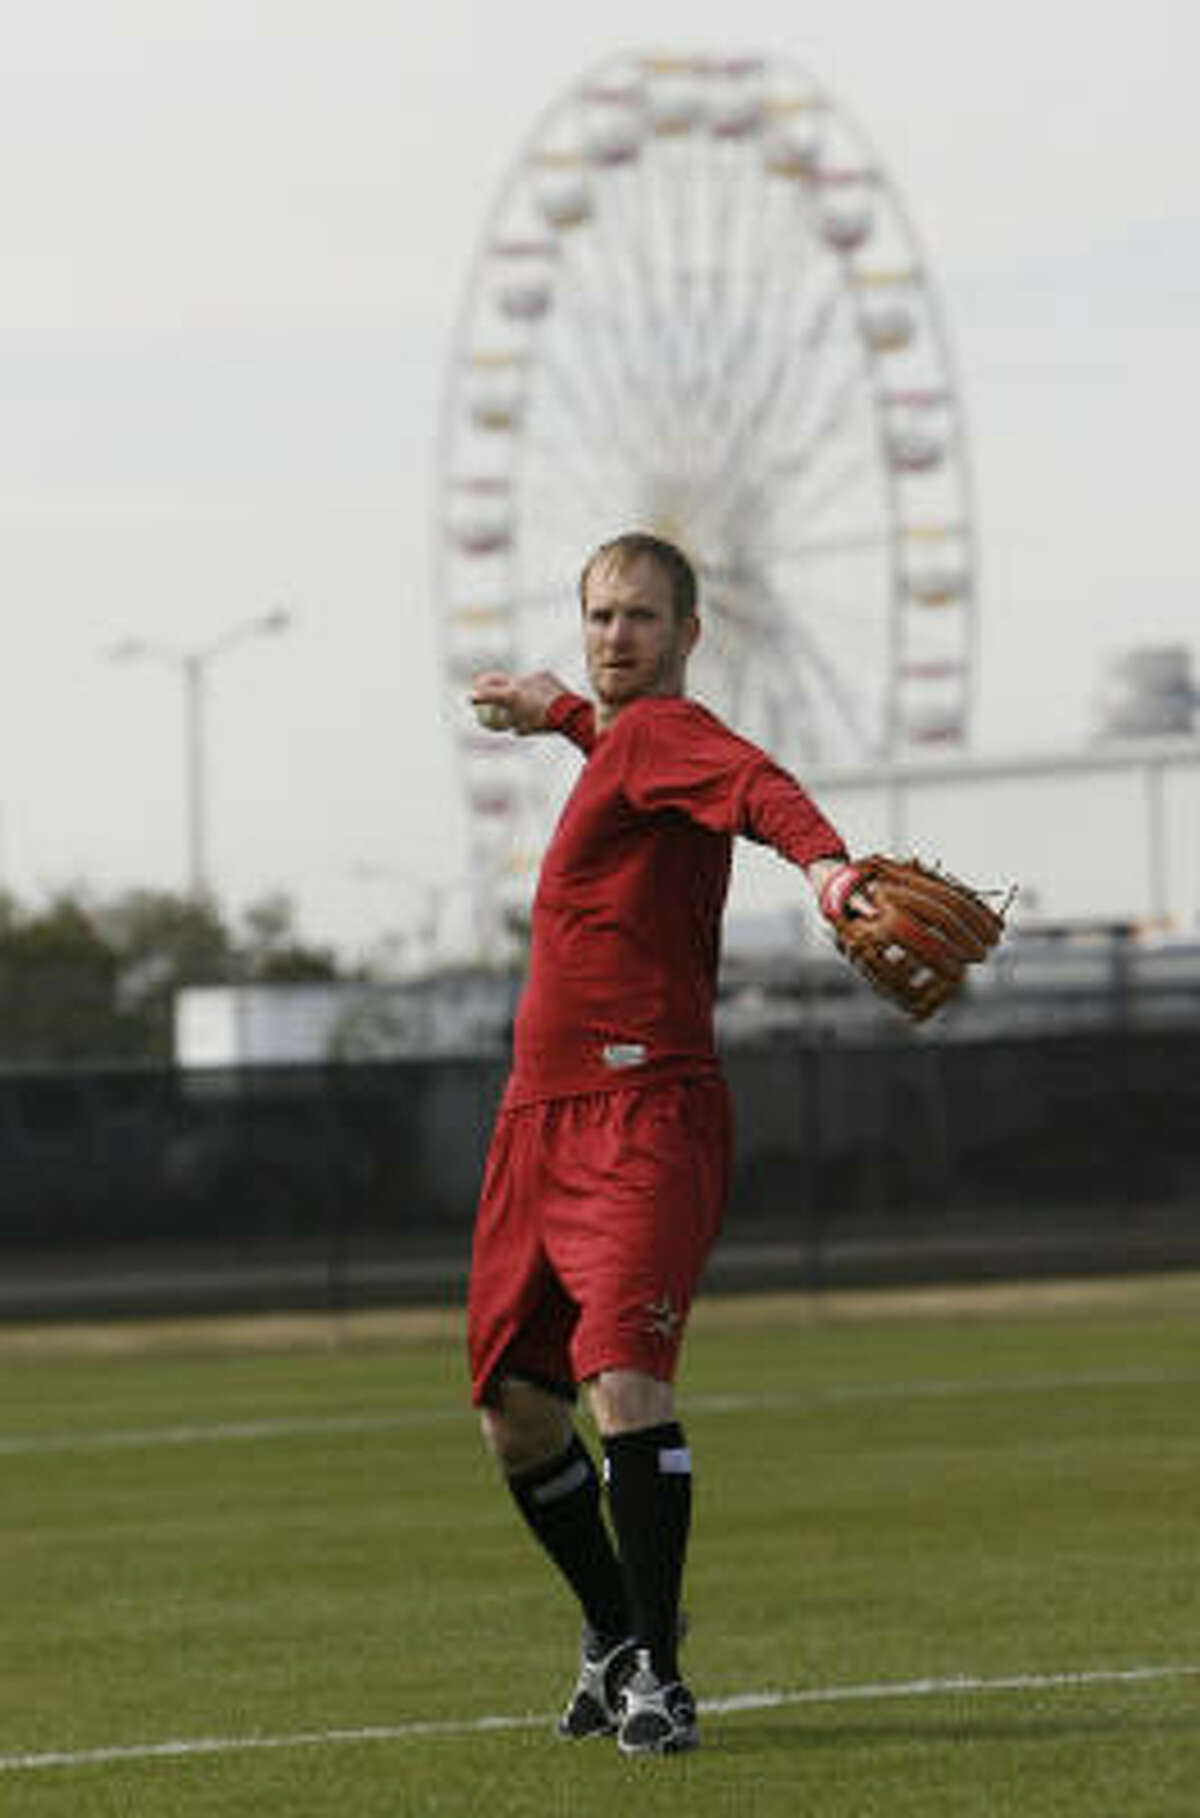 Infielder Jeff Keppinger makes a throw during a light workout at the Astros' spring training facility.